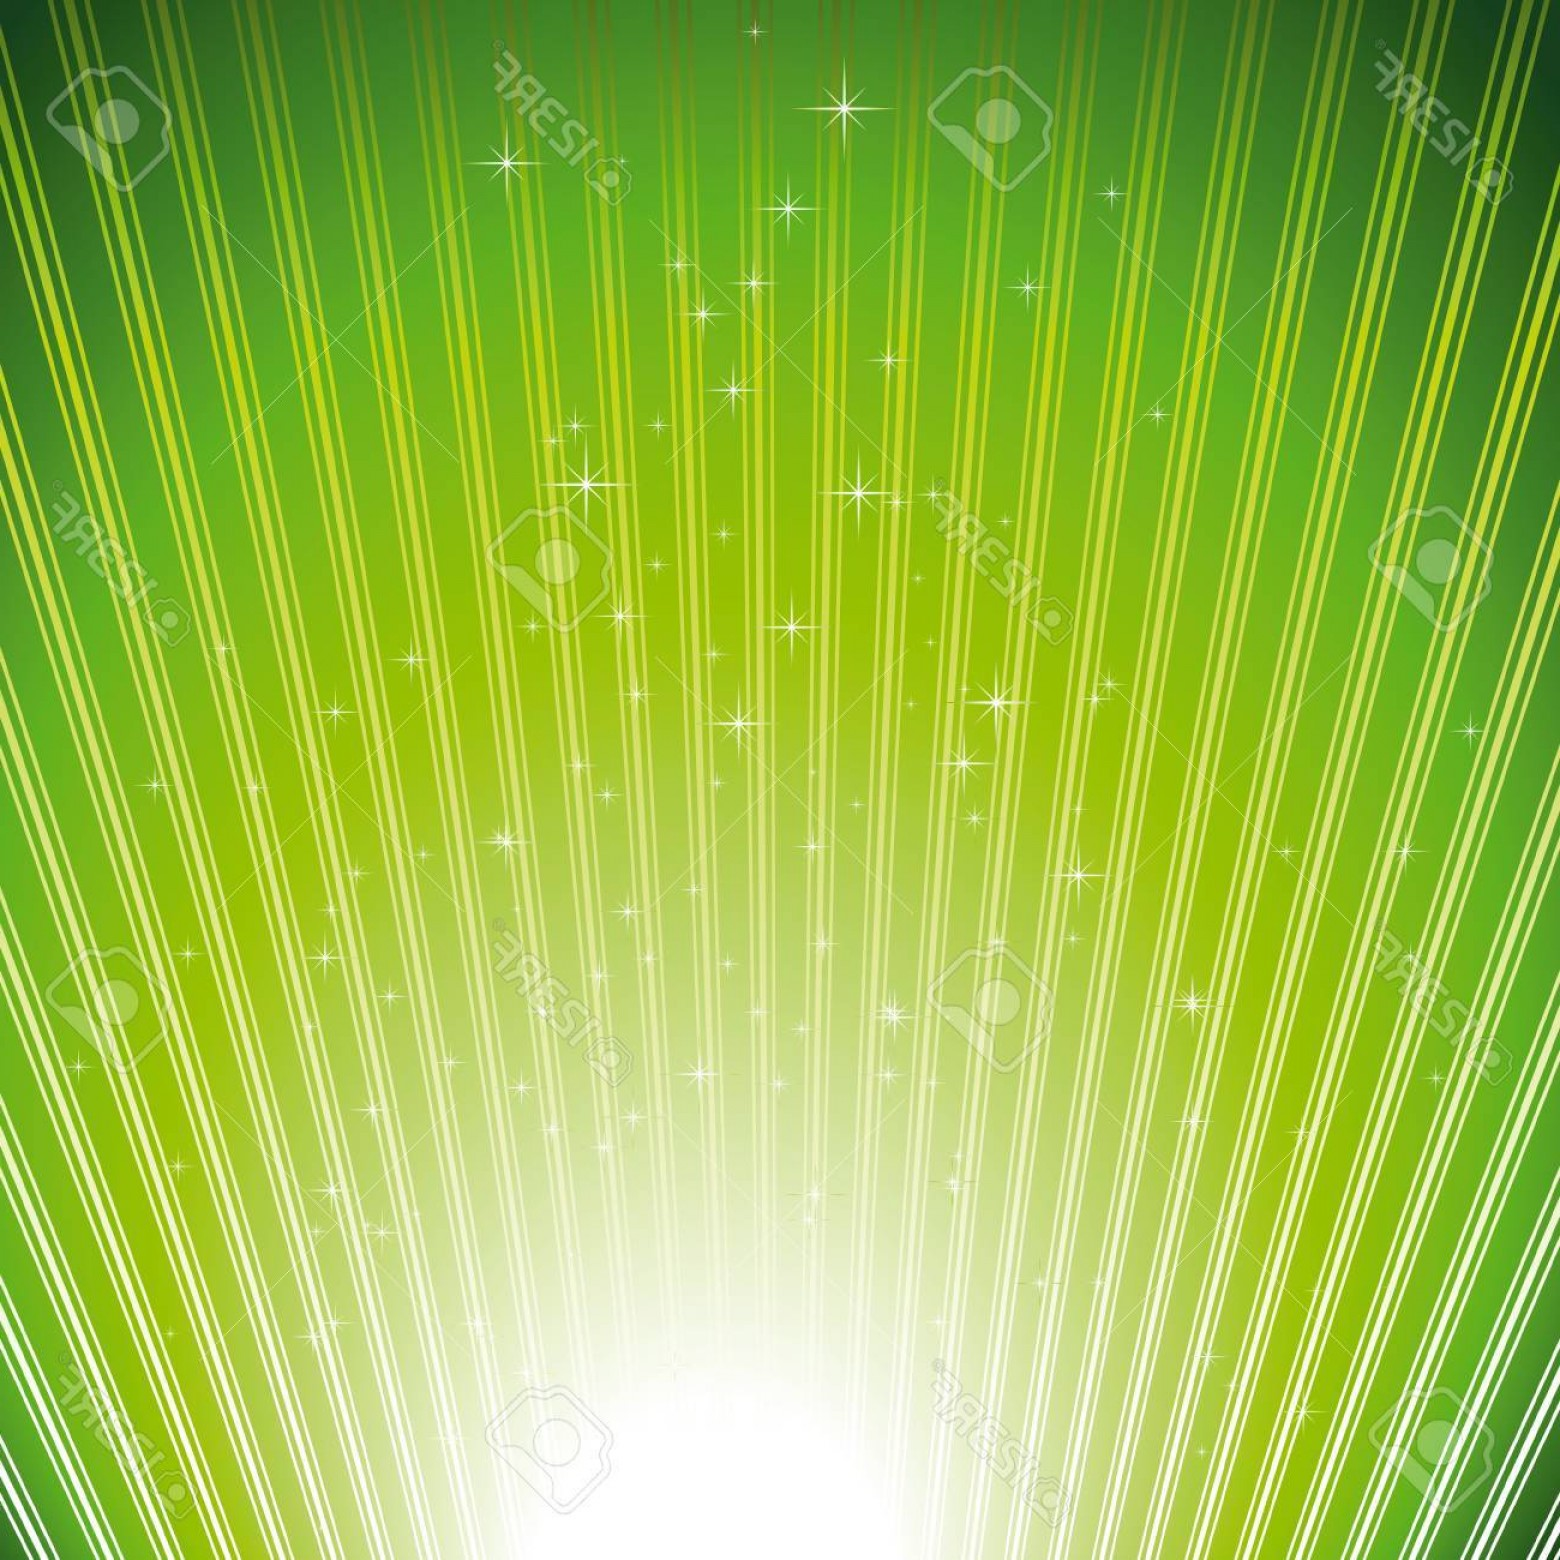 Green light ray jpeg clipart graphic library library Green Light Burst Vector   lamaison graphic library library